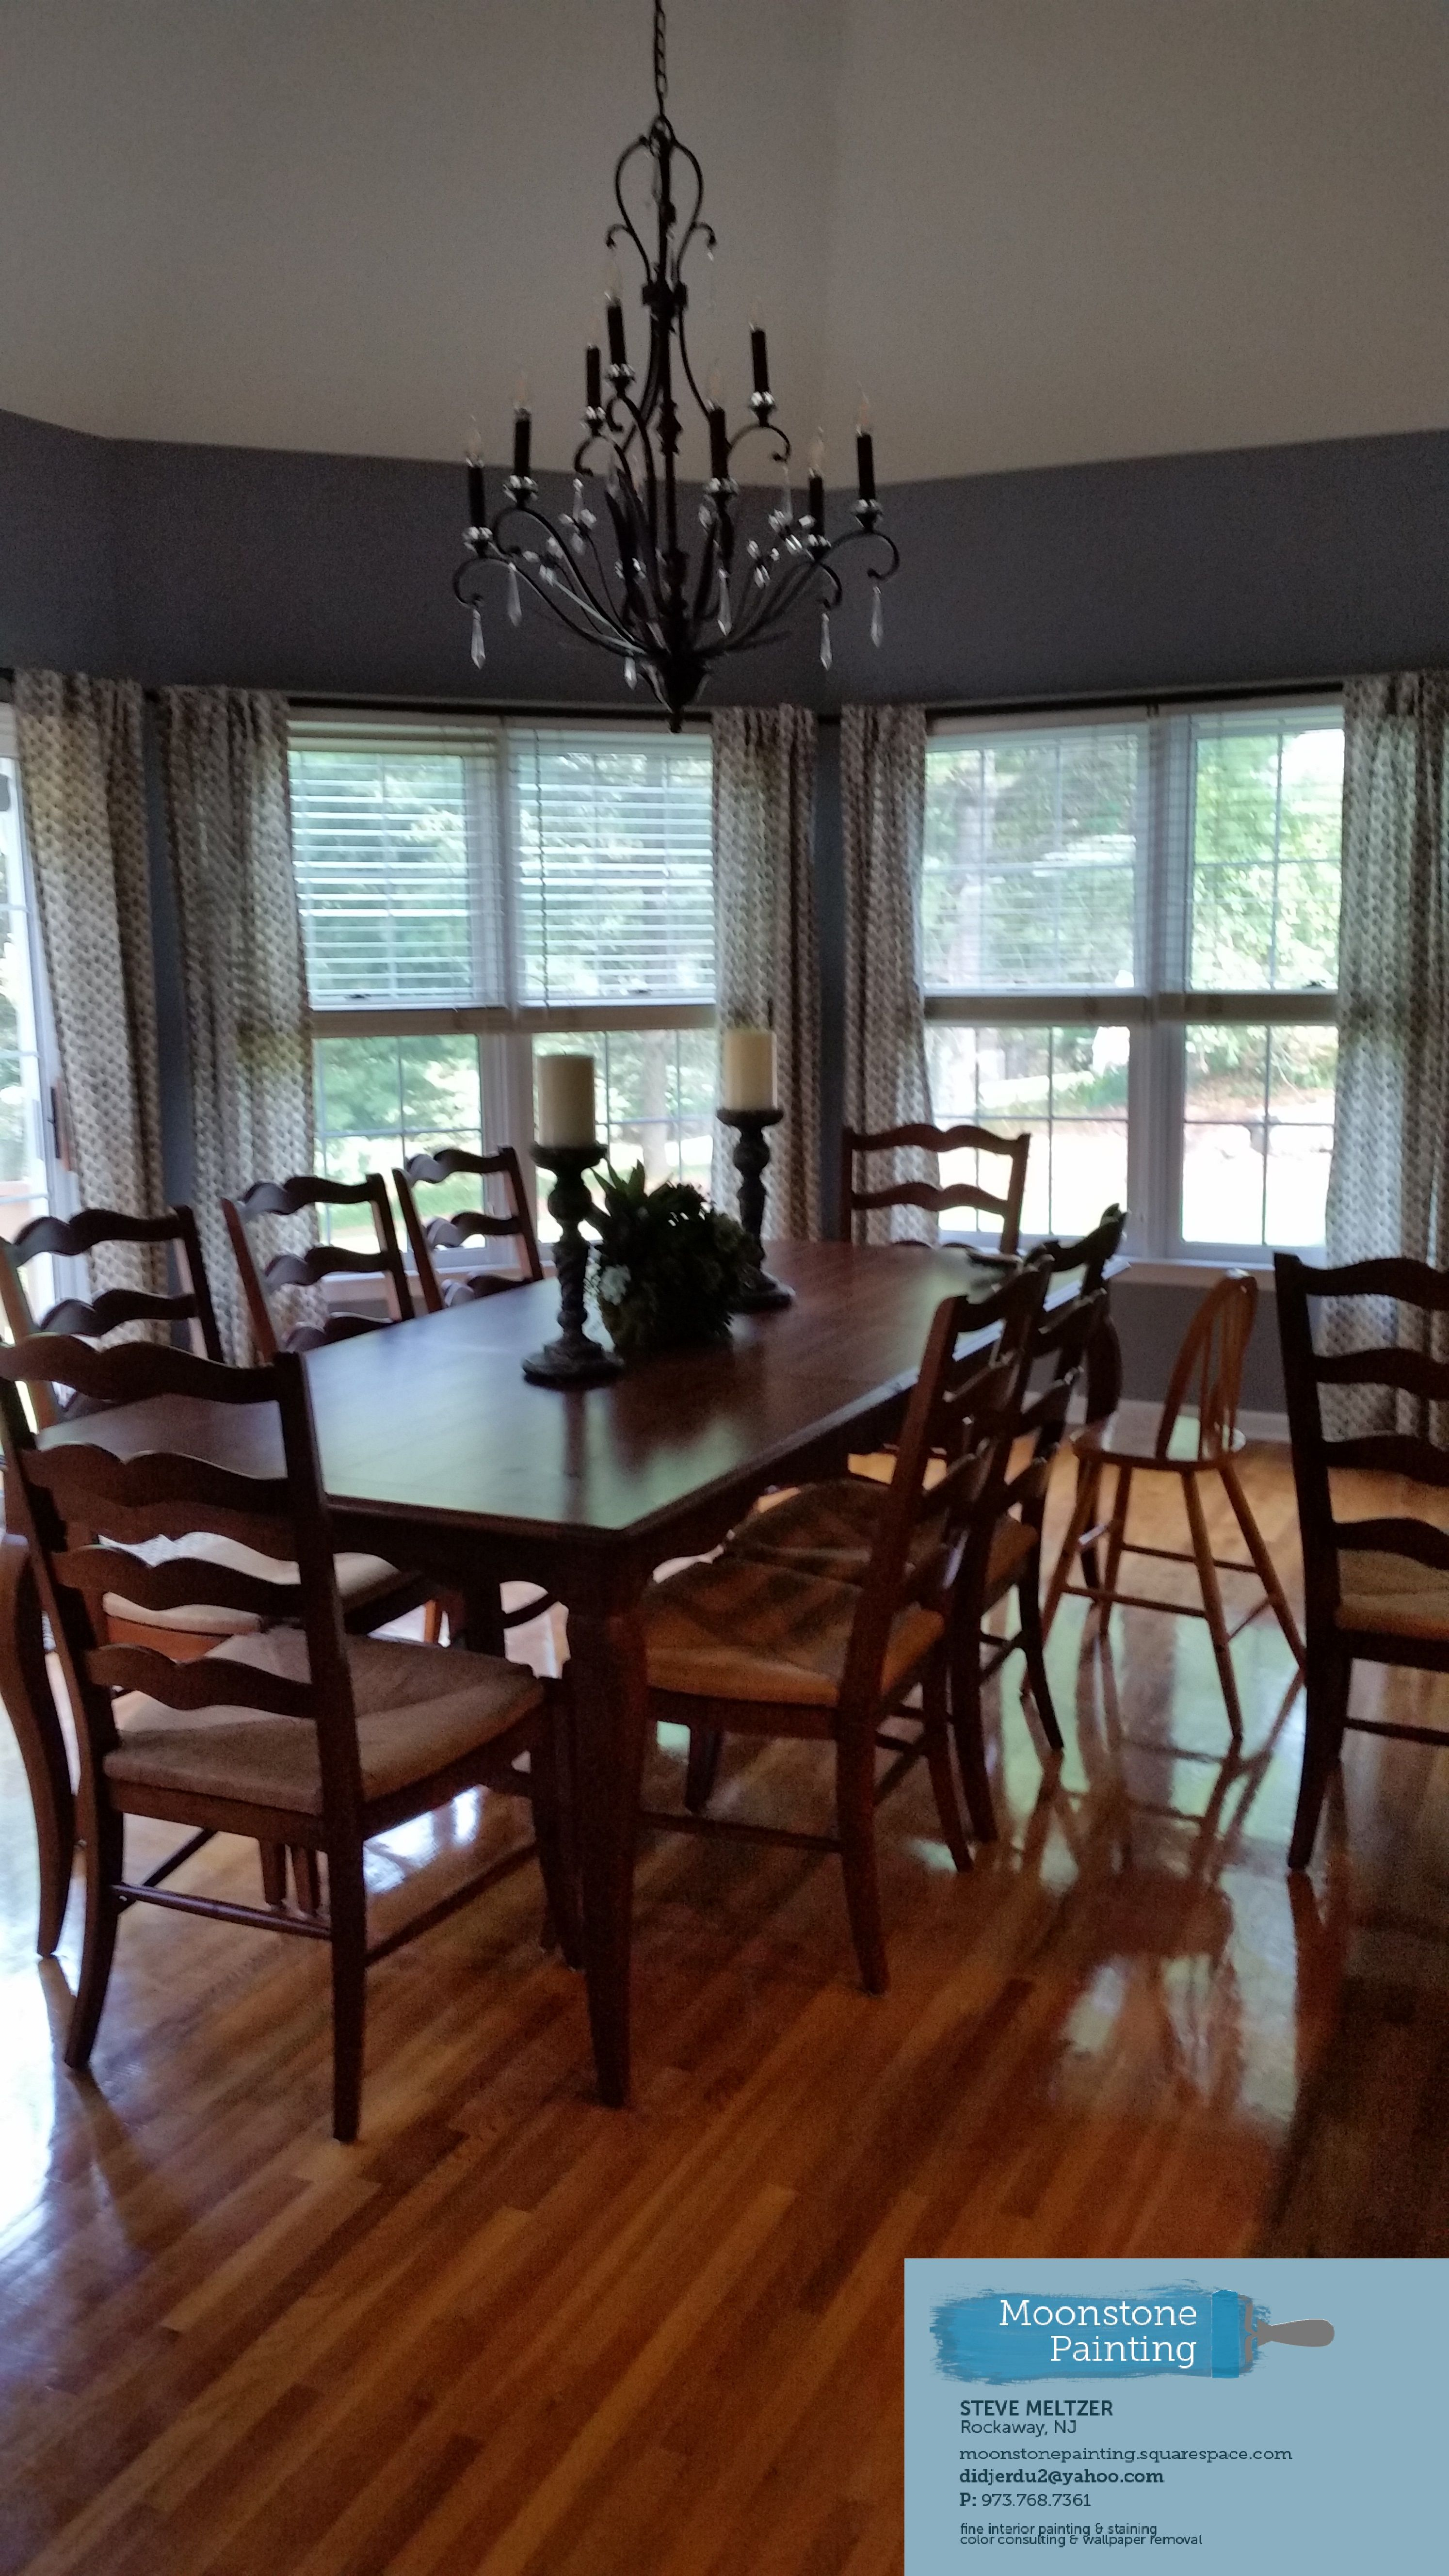 Elegant Breakfast room. (With images) Home decor